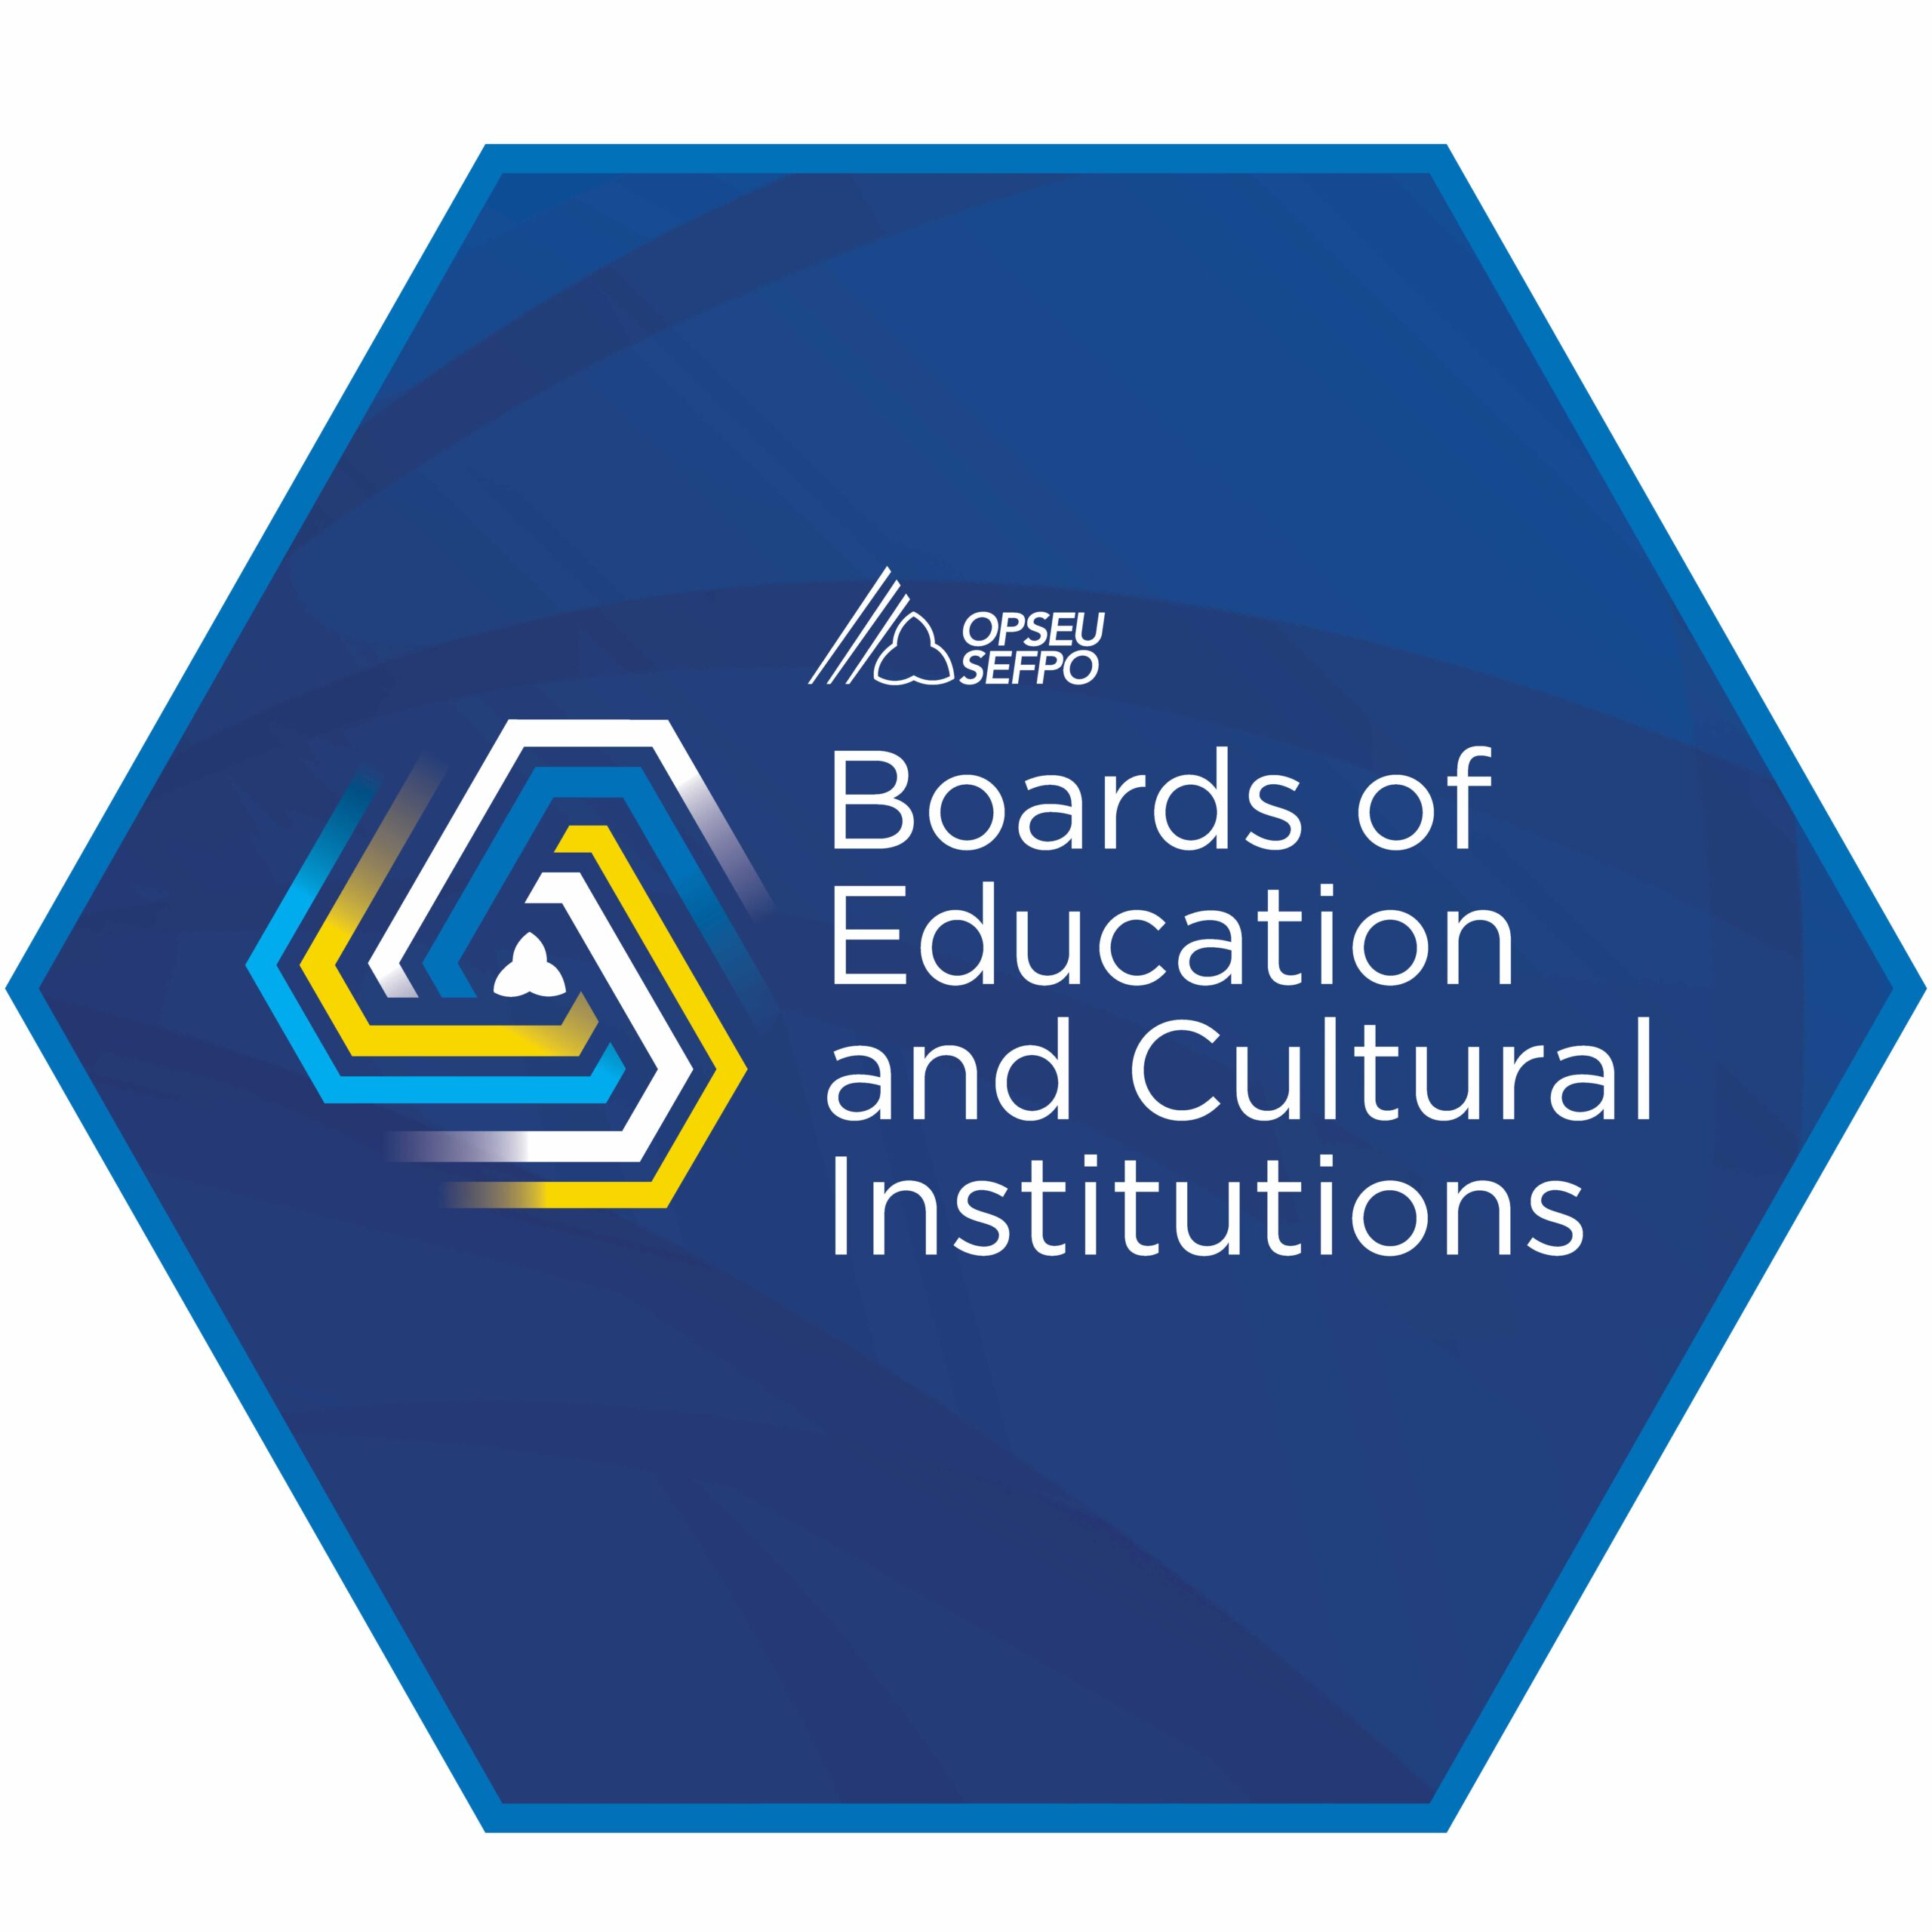 OPSEU/SEFPO Boards of Education and Cultural Institutions Logo